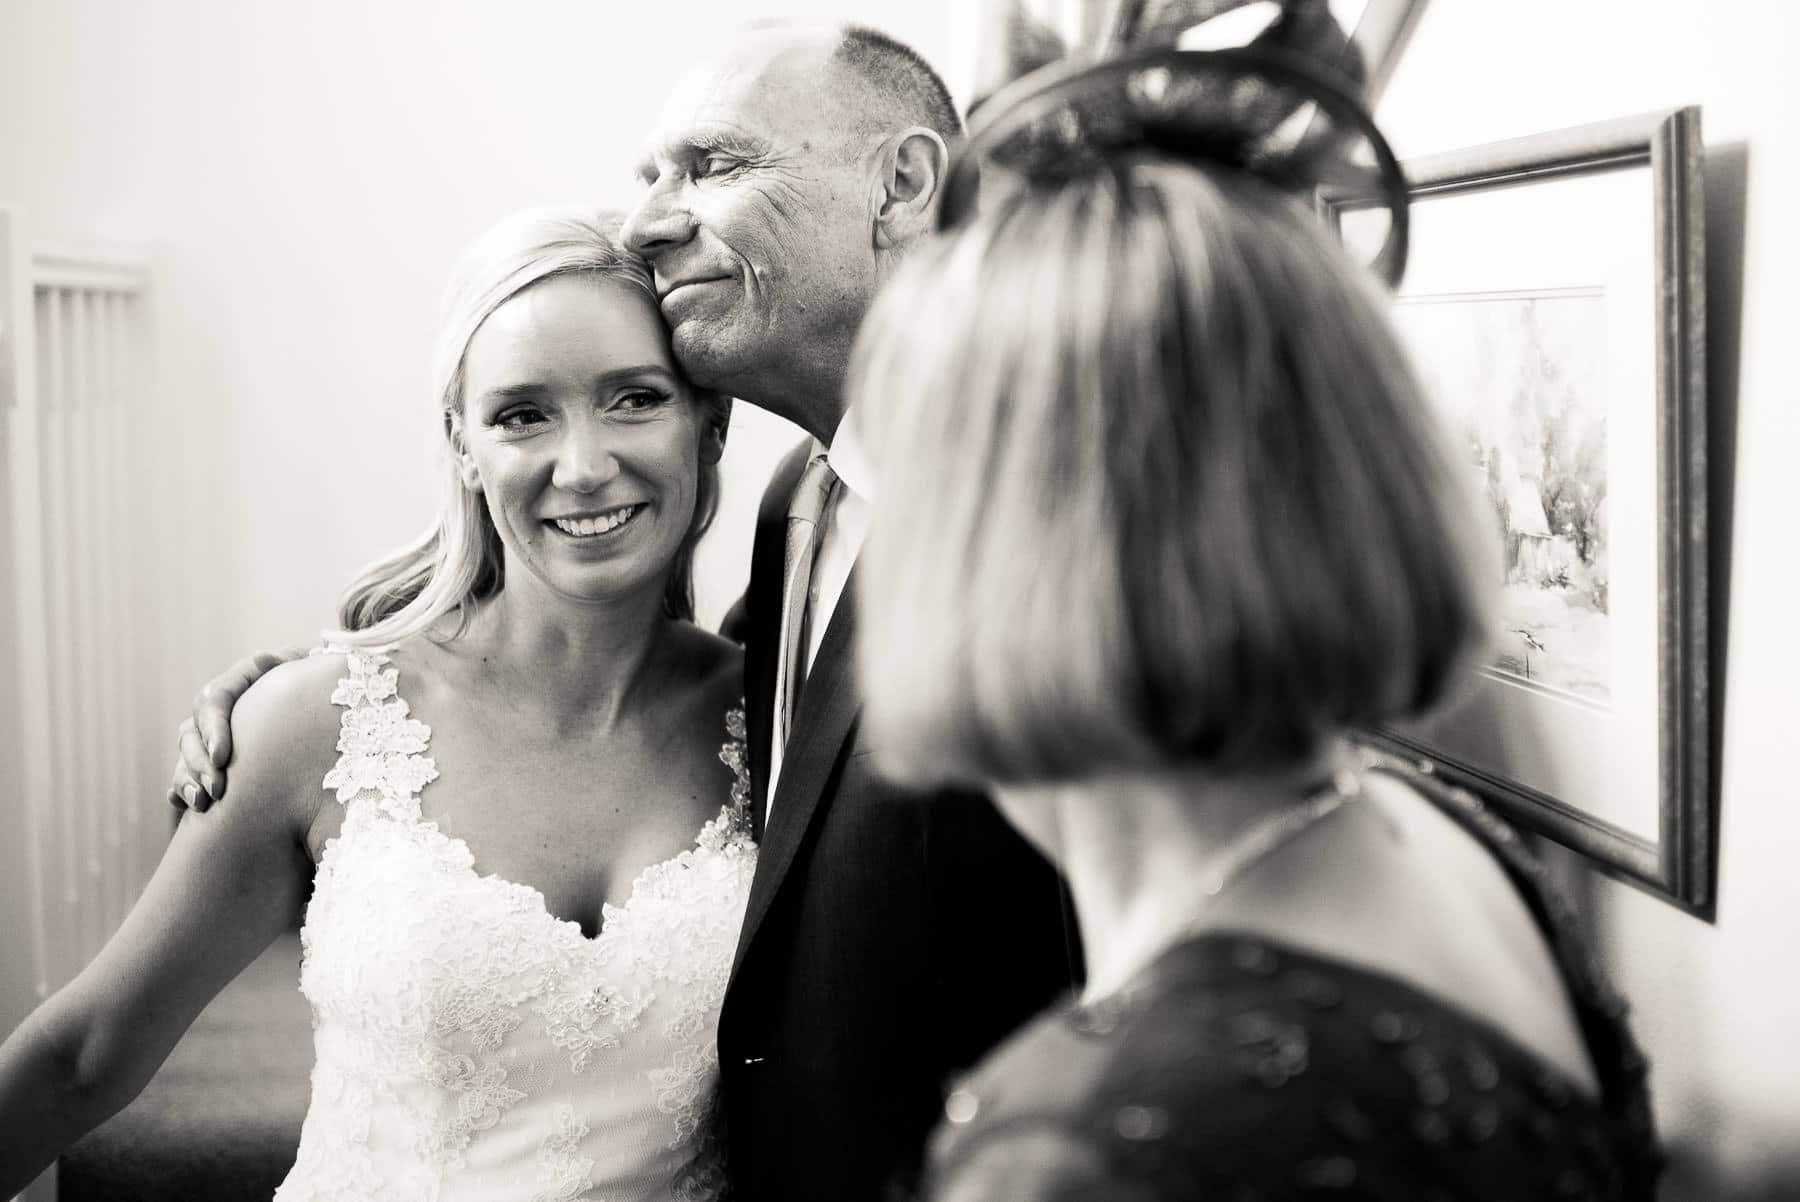 Natural Wedding Photography - Bride's father sees bride